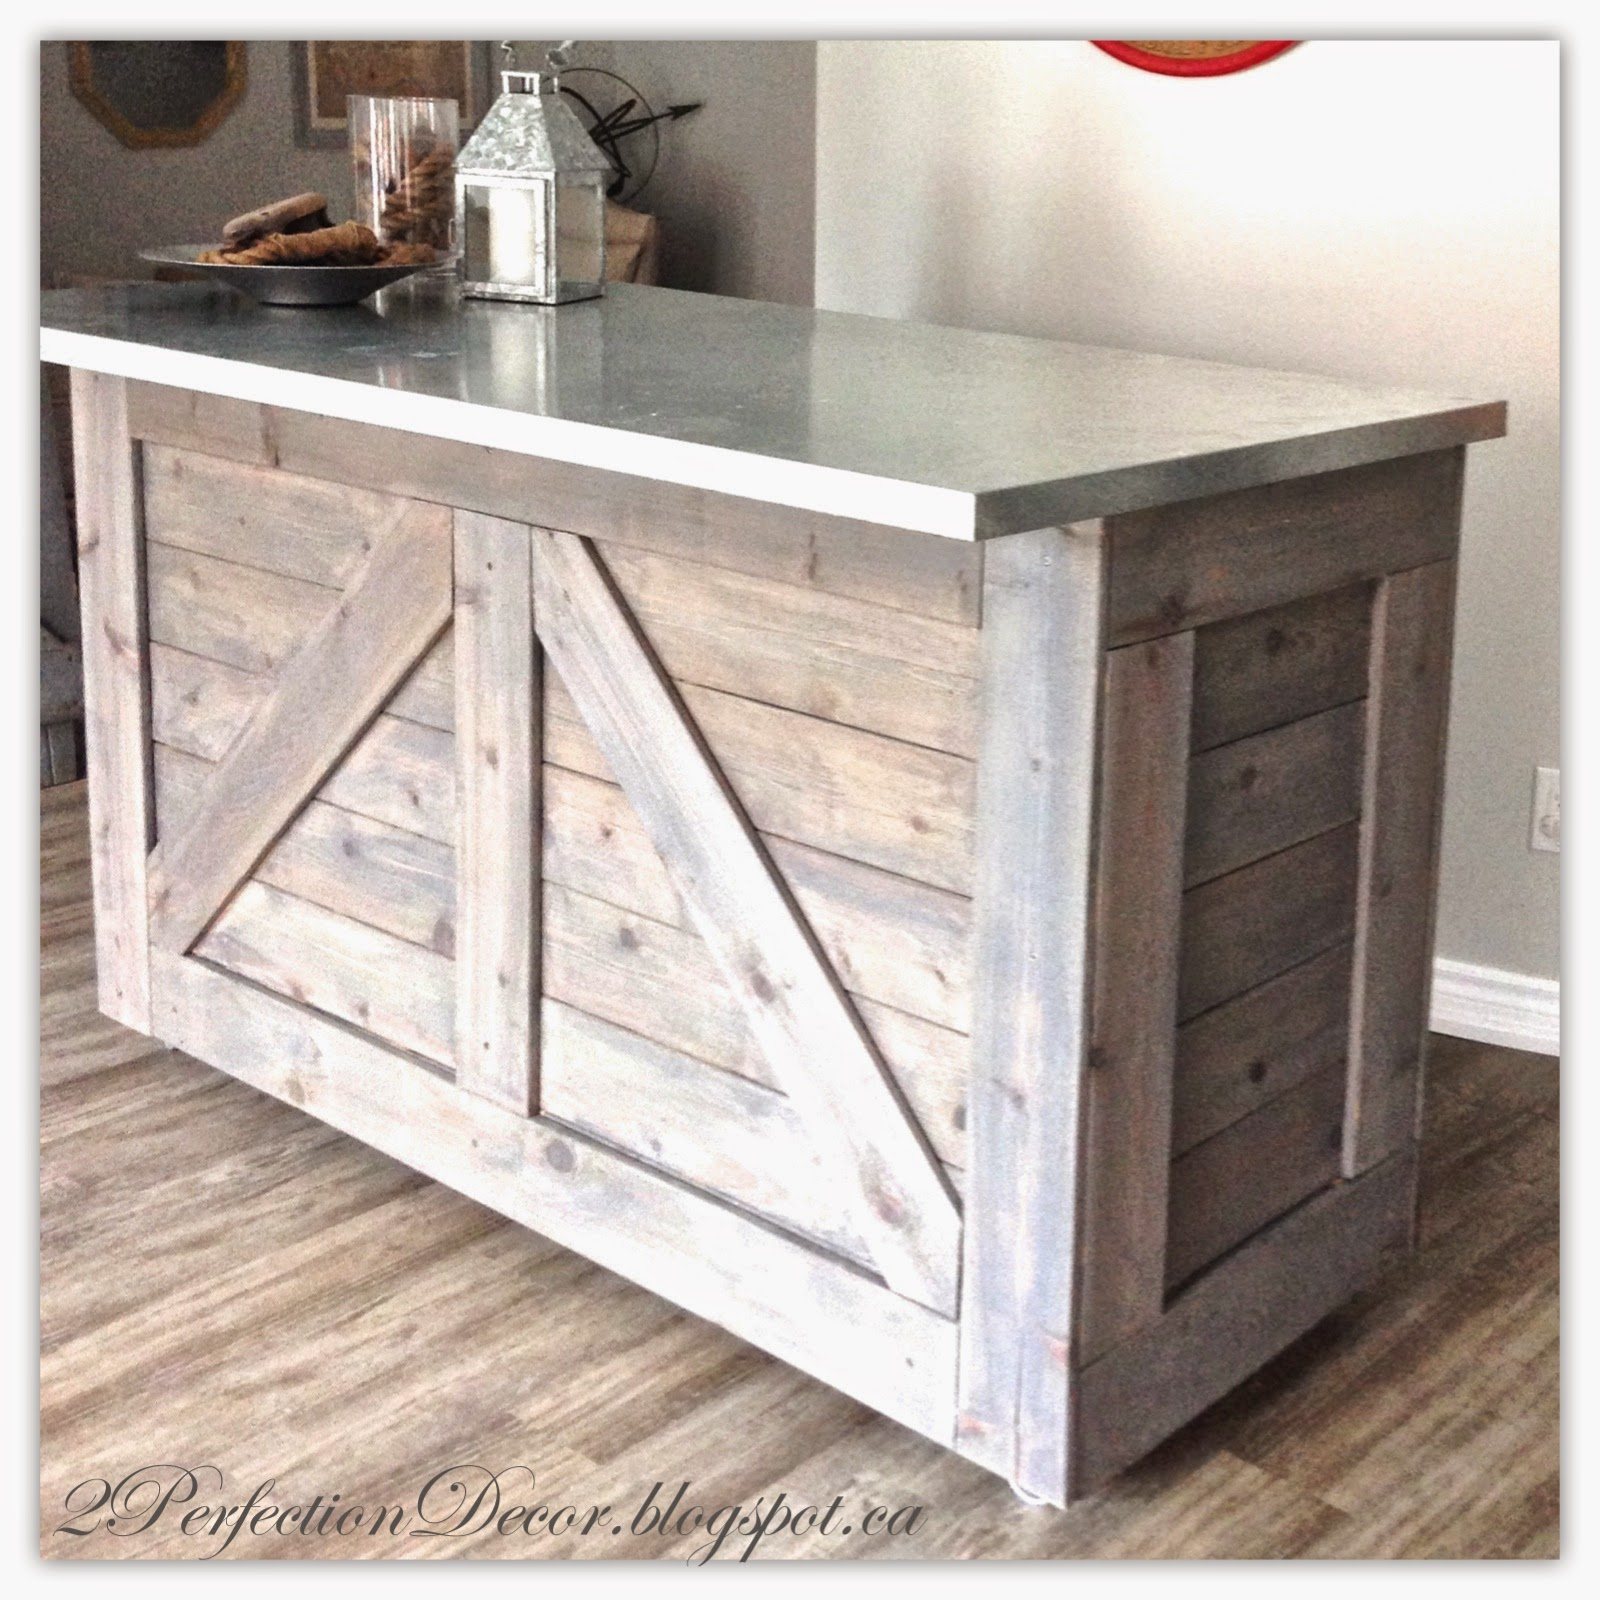 How To Upcycle An Ikea Cabinet Into A Rustic Wooden Bar By 2perfection Decor Blog Featured